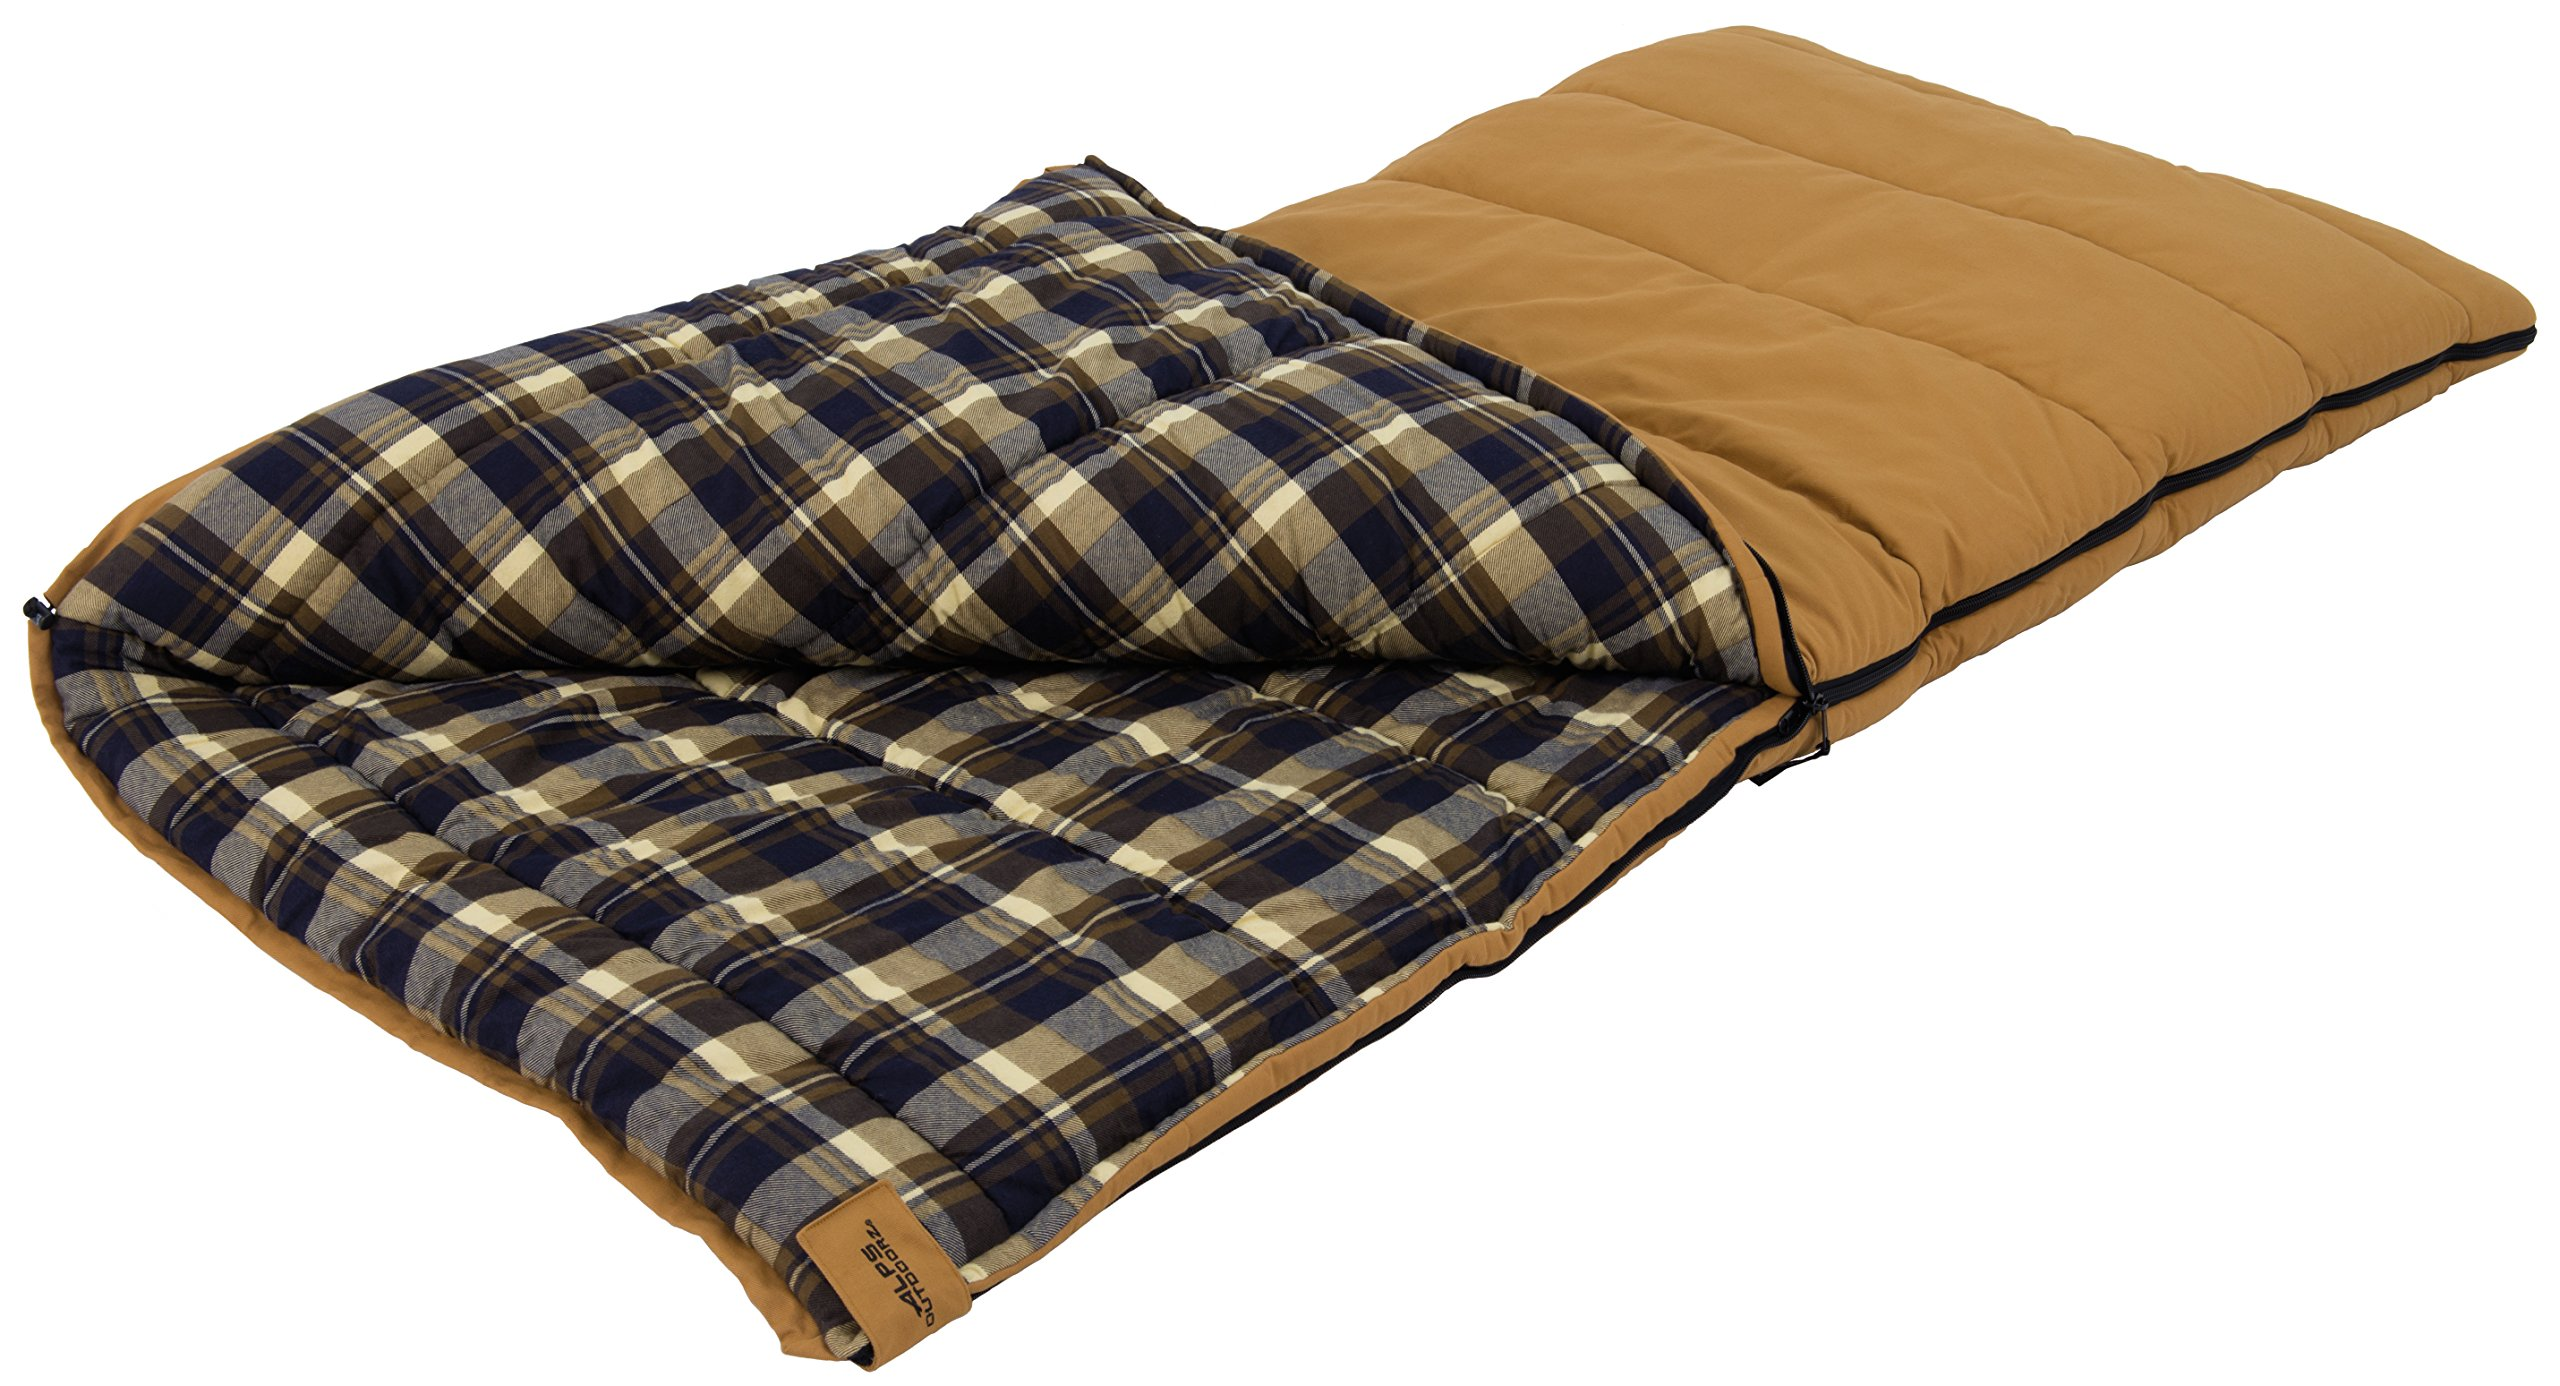 ALPS OutdoorZ Redwood -25 Degree Flannel Sleeping Bag by ALPS OutdoorZ